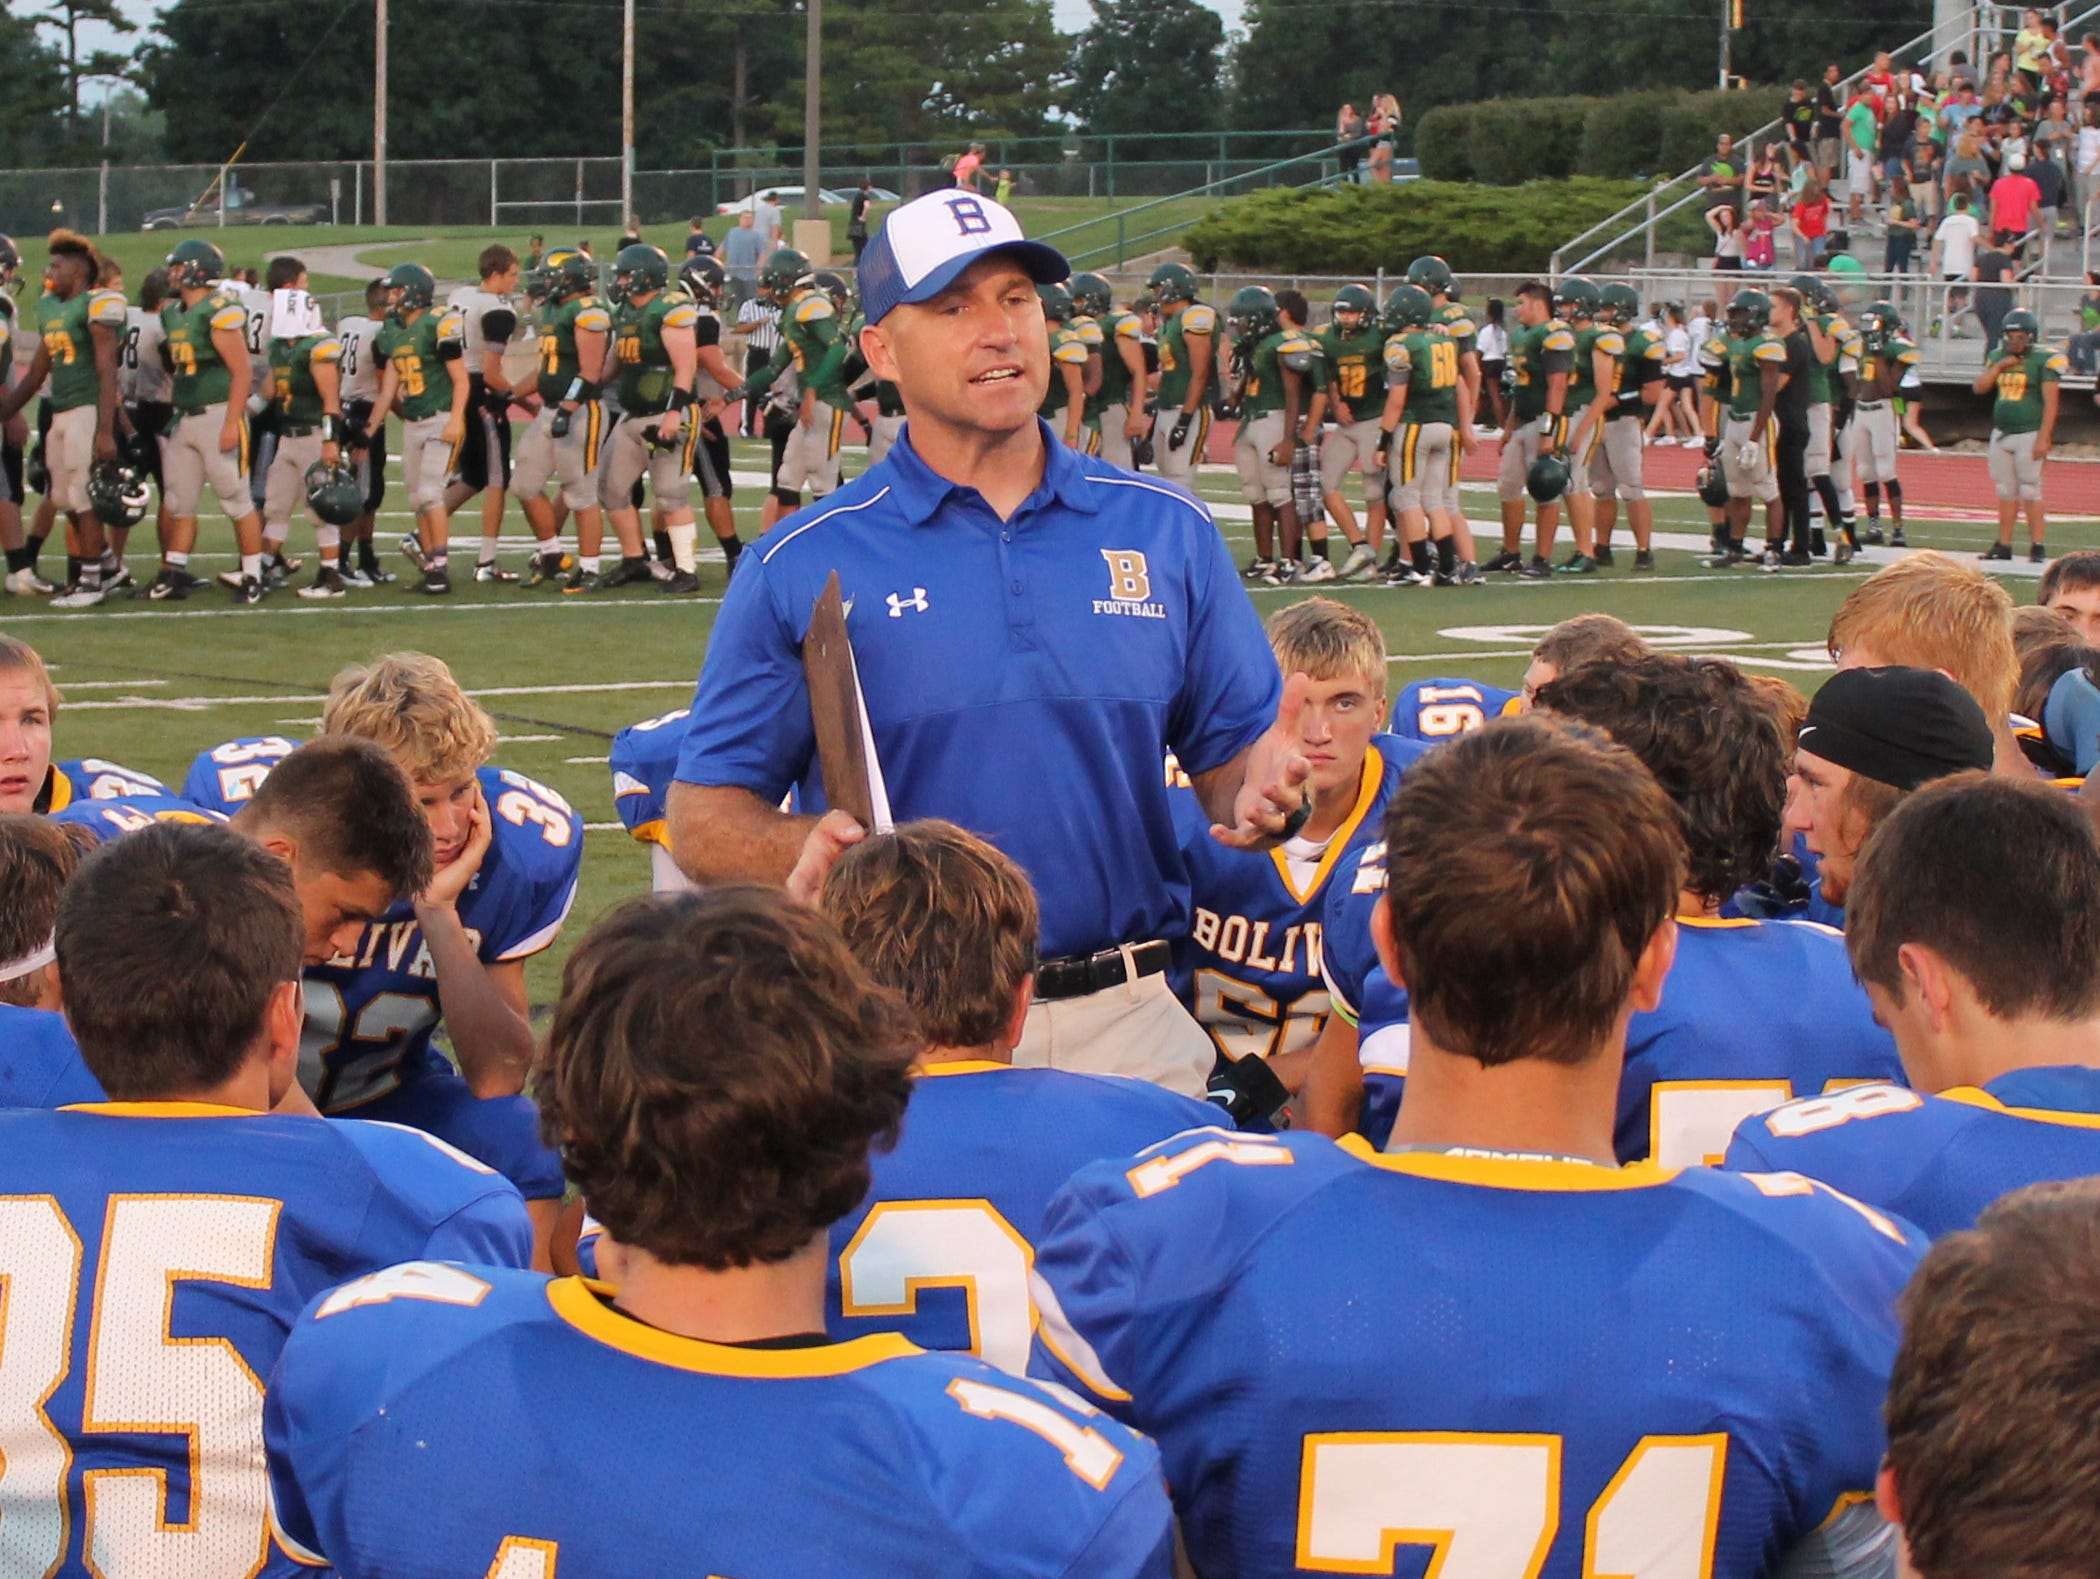 Bolivar High School football coach Lance Roweton (standing) announced he will step aside from coaching football after the Liberators won 13 consecutive COC Small championships.